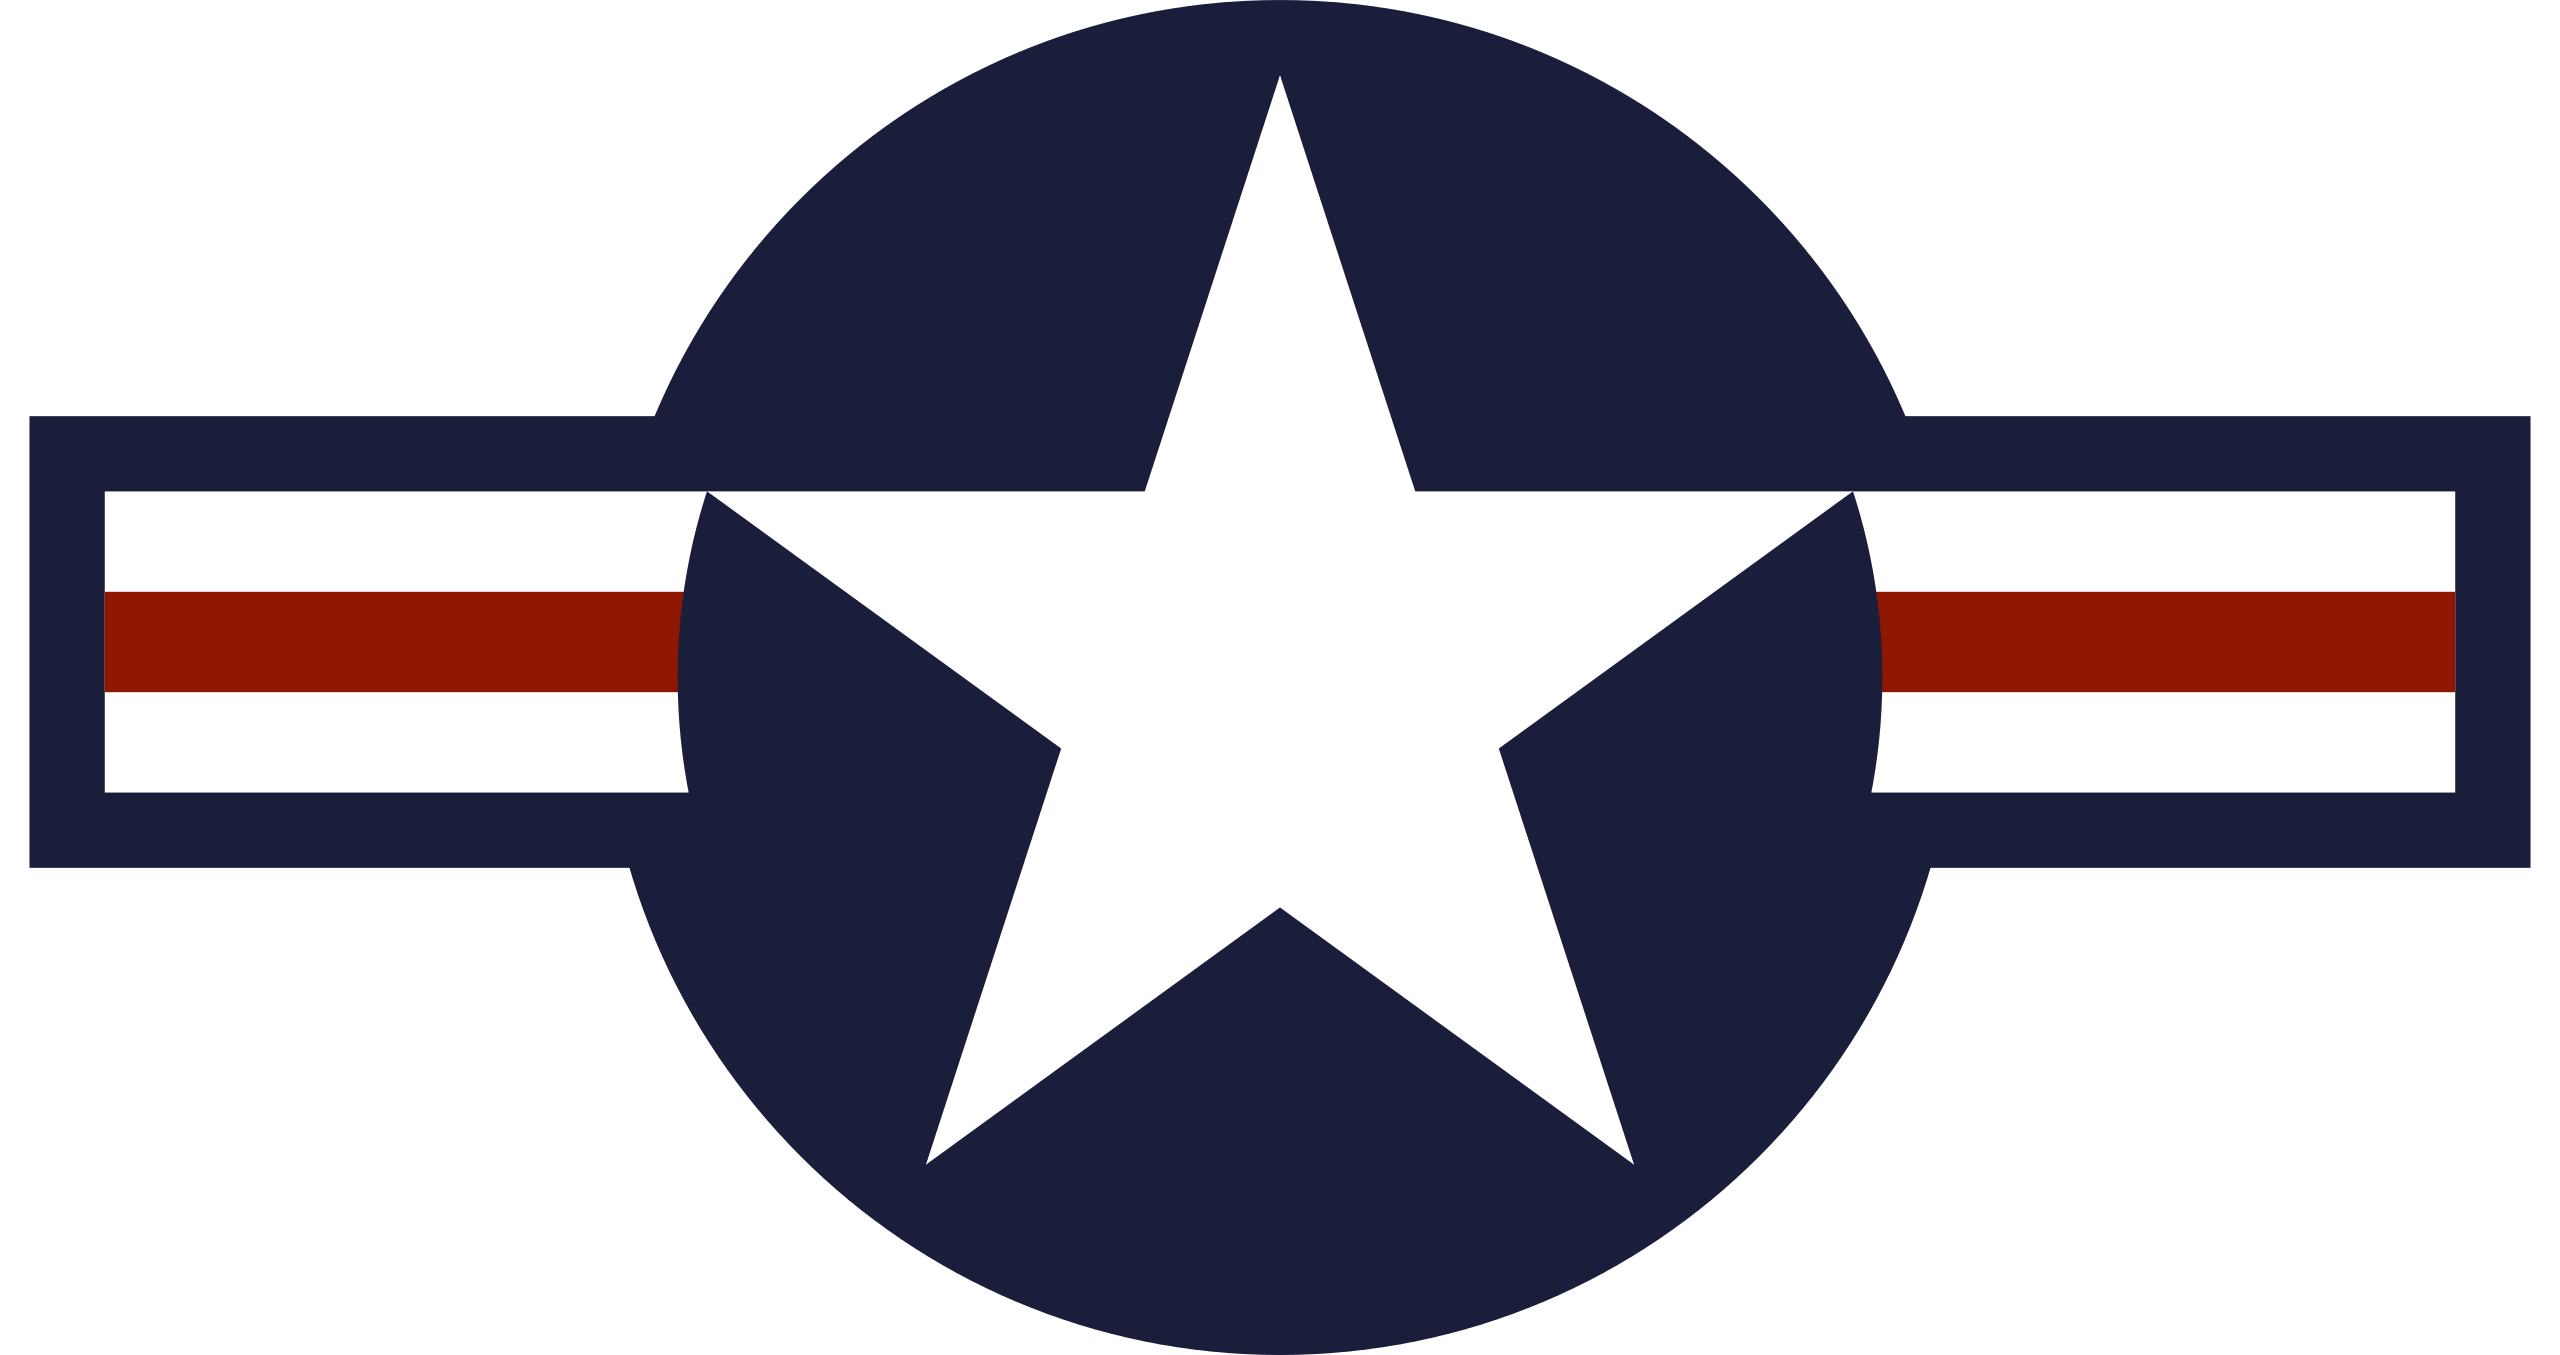 United states air force. Pilot clipart security guard logo